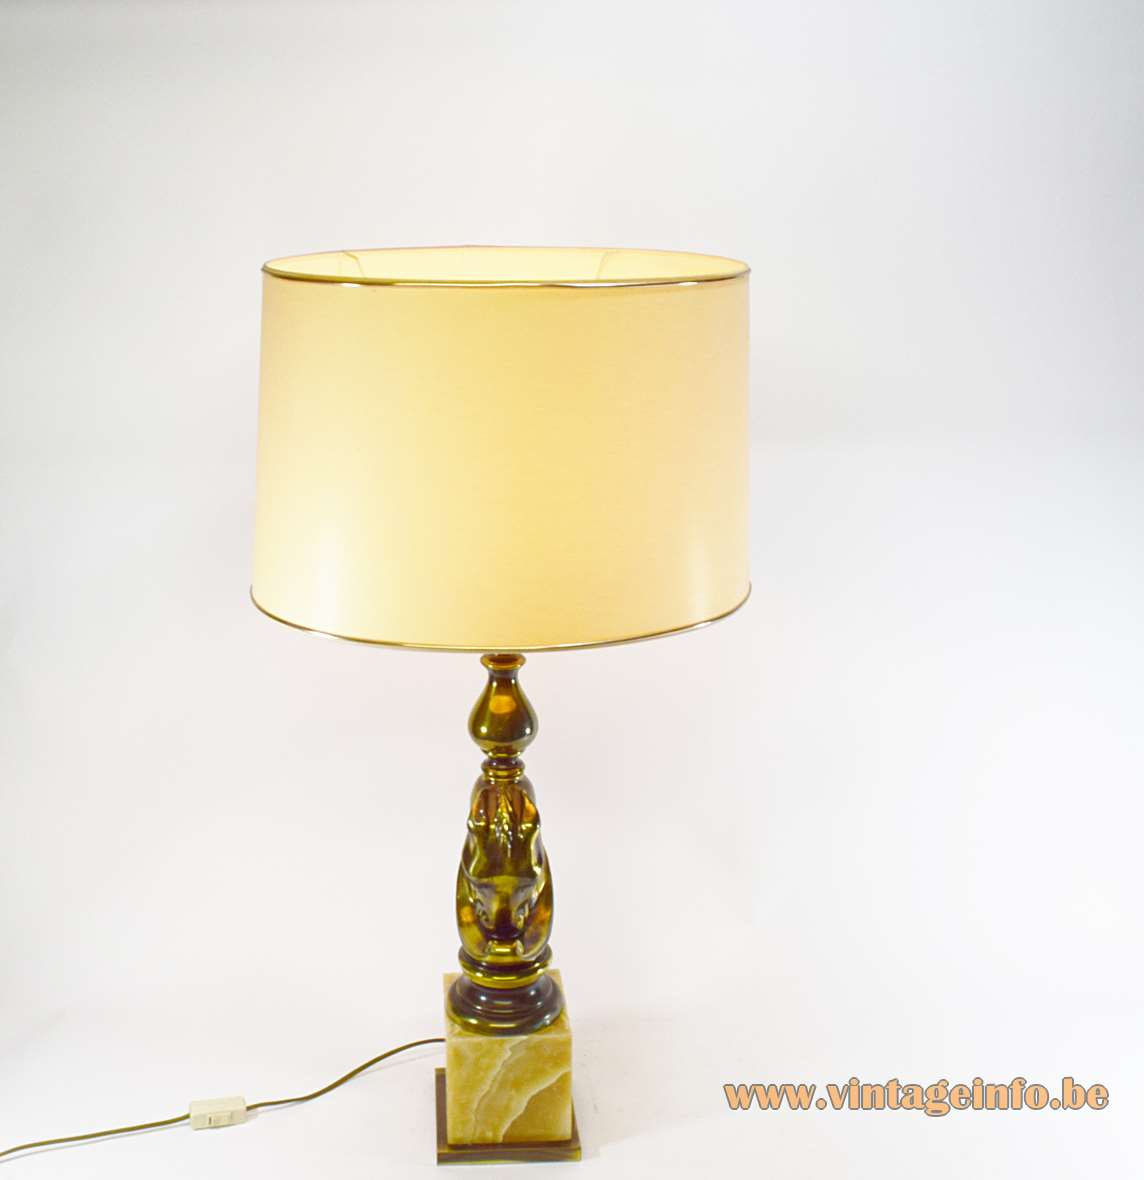 Horsehead table lamp brown onyx marble base brass head fabric lampshade Loevsky and Loevsky E27 socket